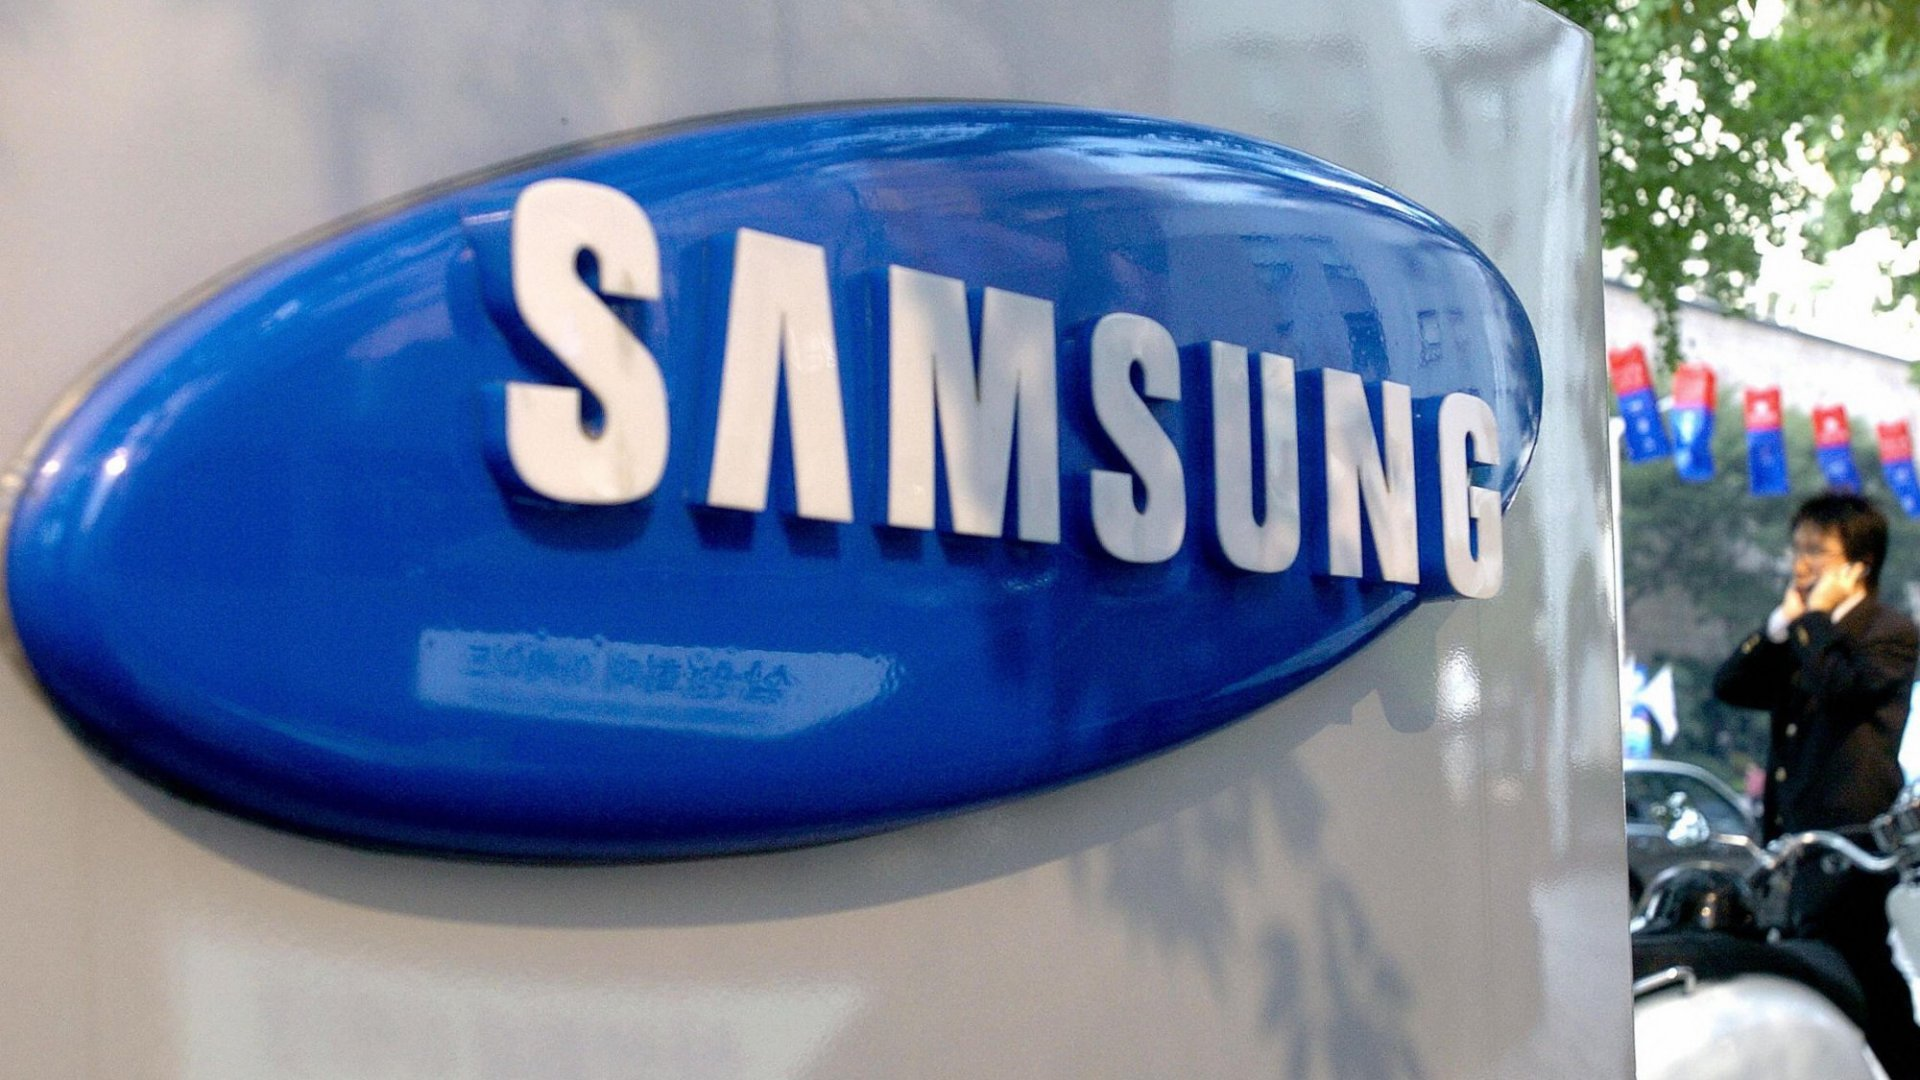 Samsung Enters Connected Car Business With $8 Billion Acquisition